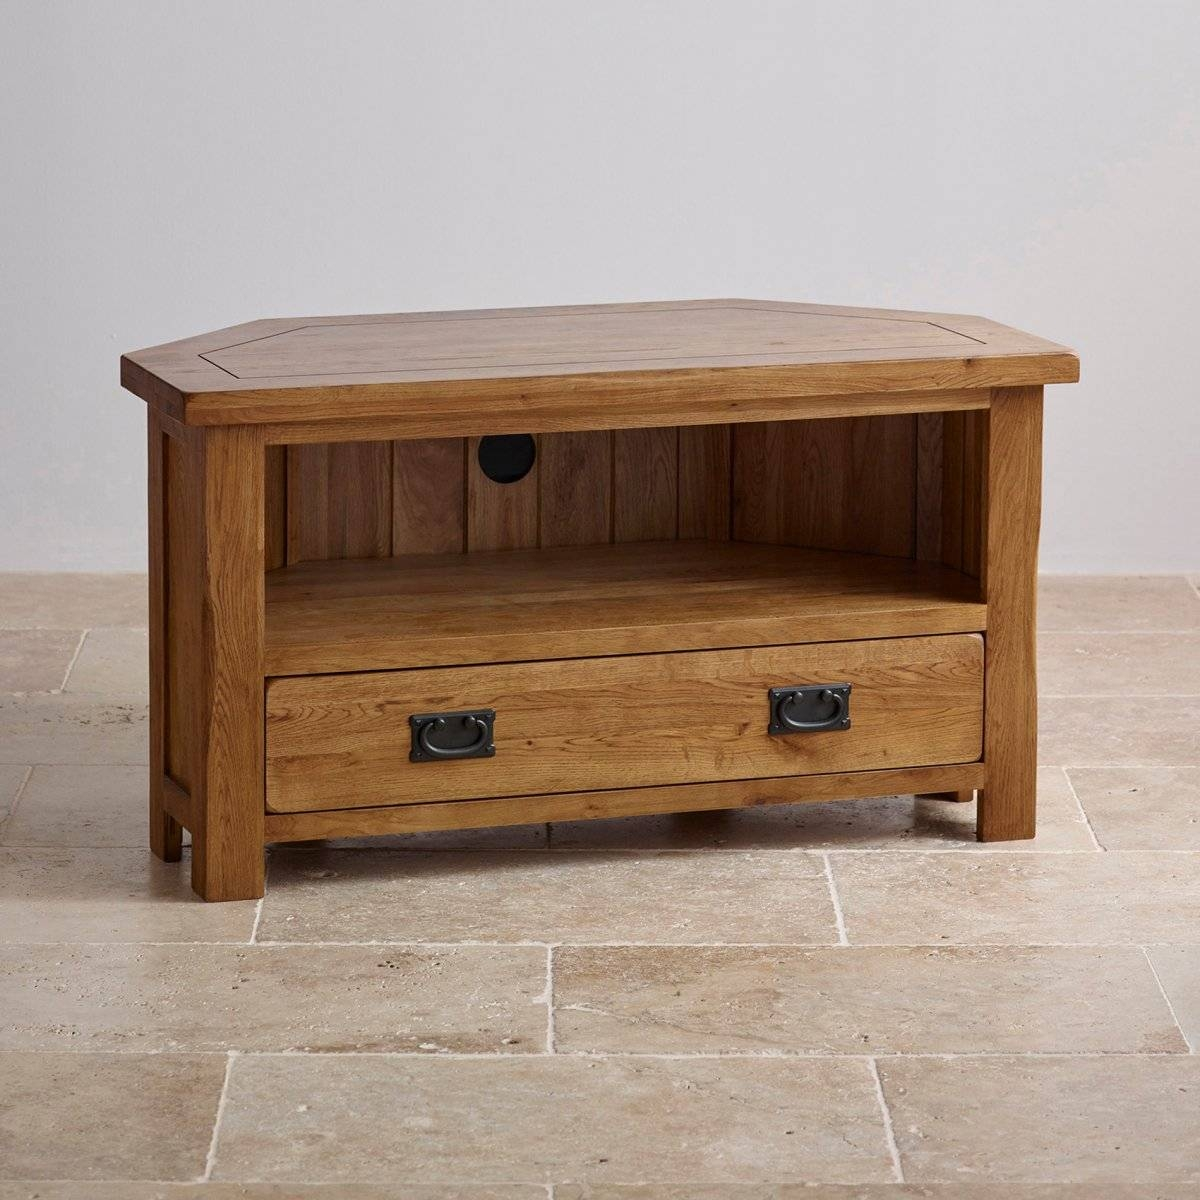 Original Rustic Corner Tv Cabinet In Solid Oak throughout Corner Tv Cabinets (Image 10 of 15)